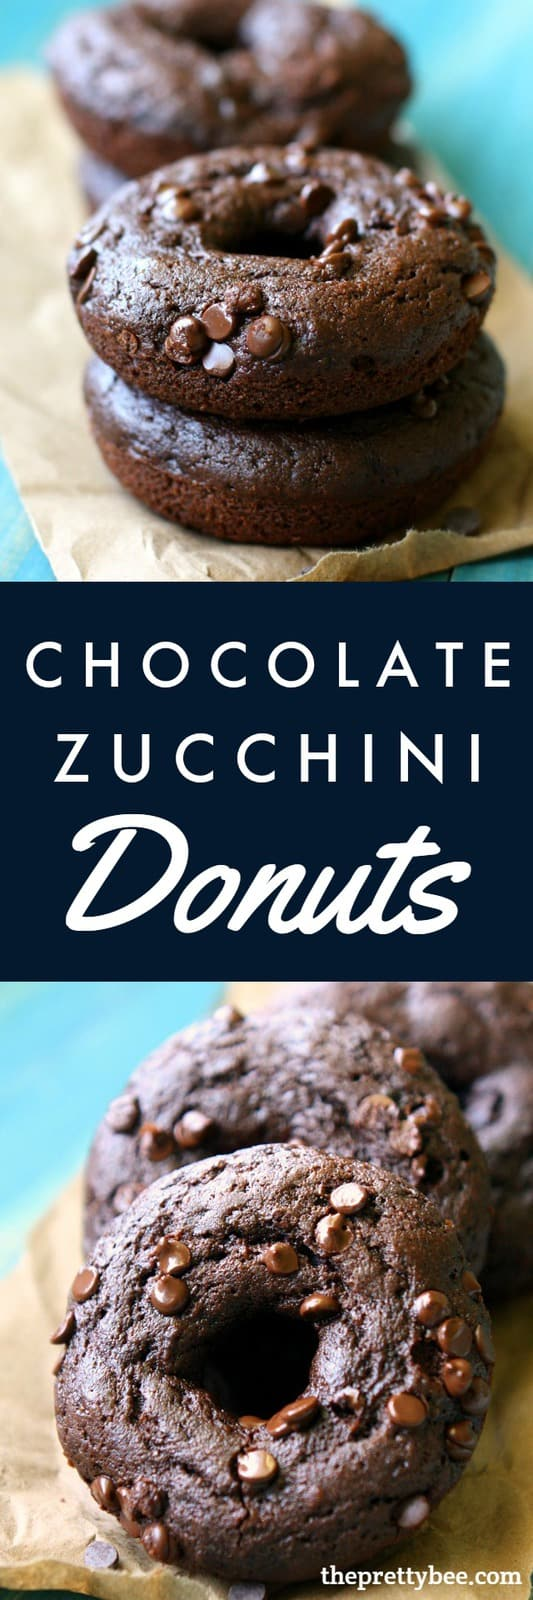 The perfect way to use up some zucchini - make these chocolate zucchini donuts! A delicious dessert or breakfast recipe that the whole family will love! #vegan #dairyfree